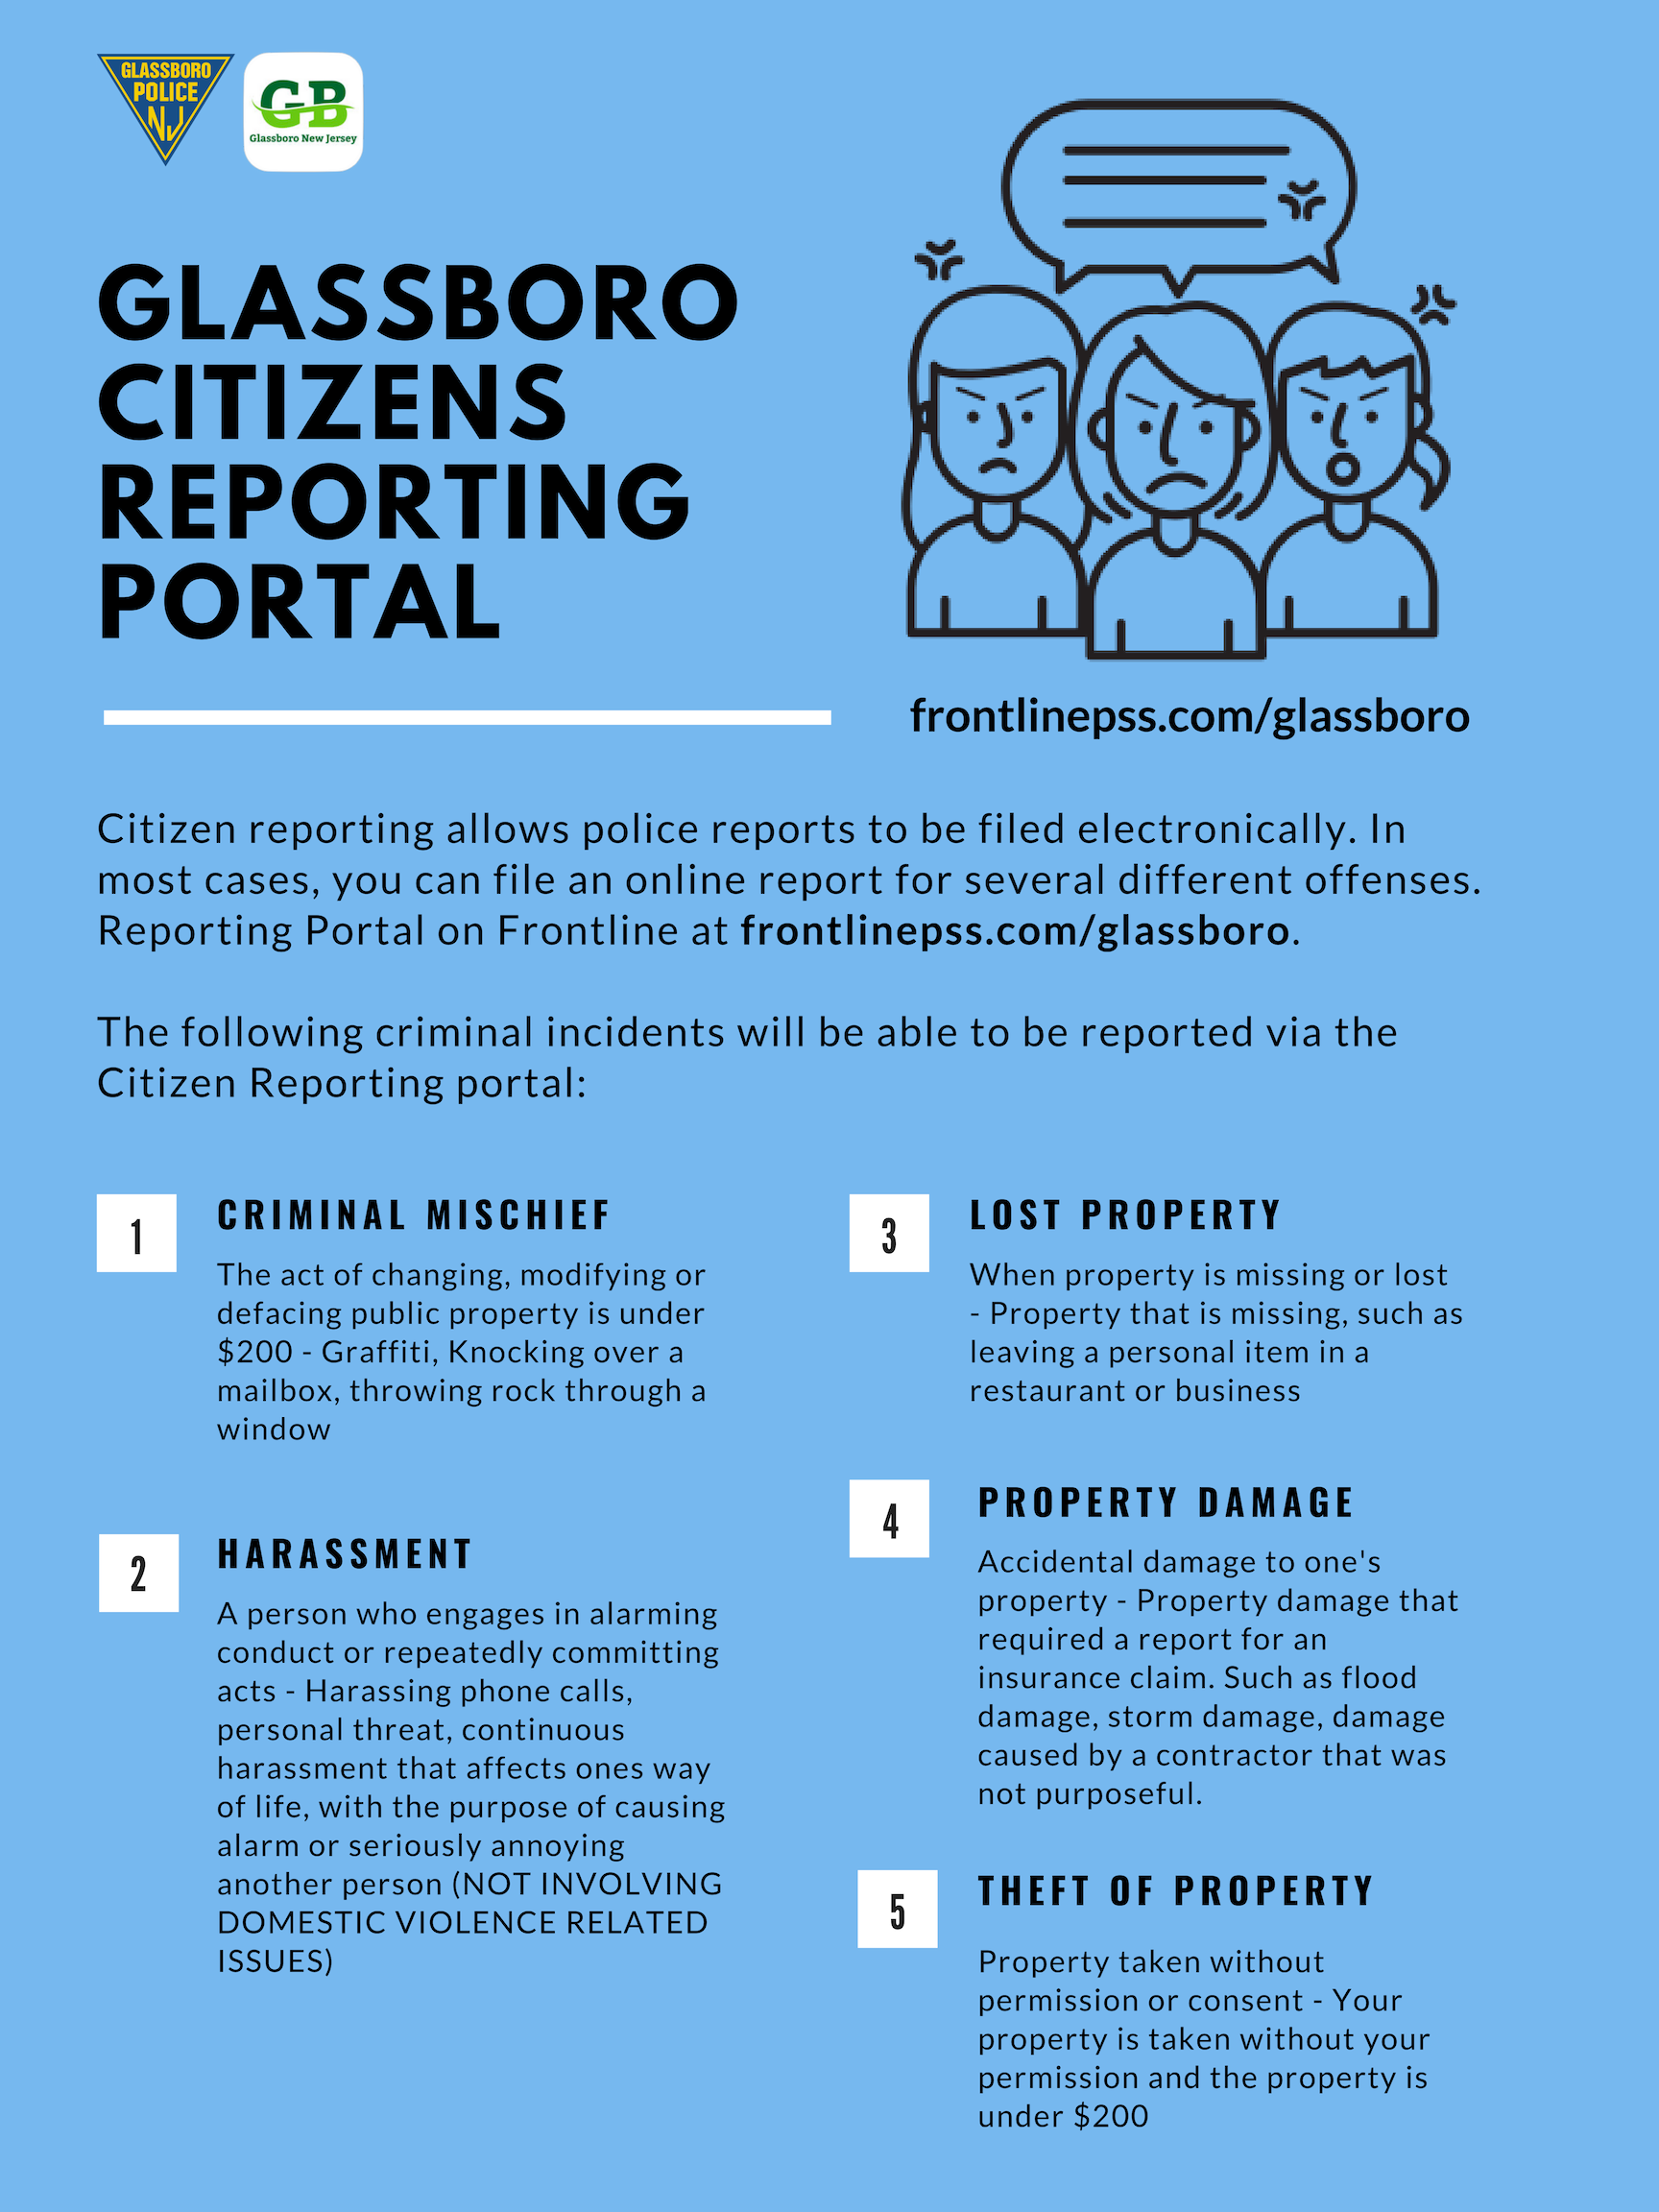 glassboro citizens reporting portal.png